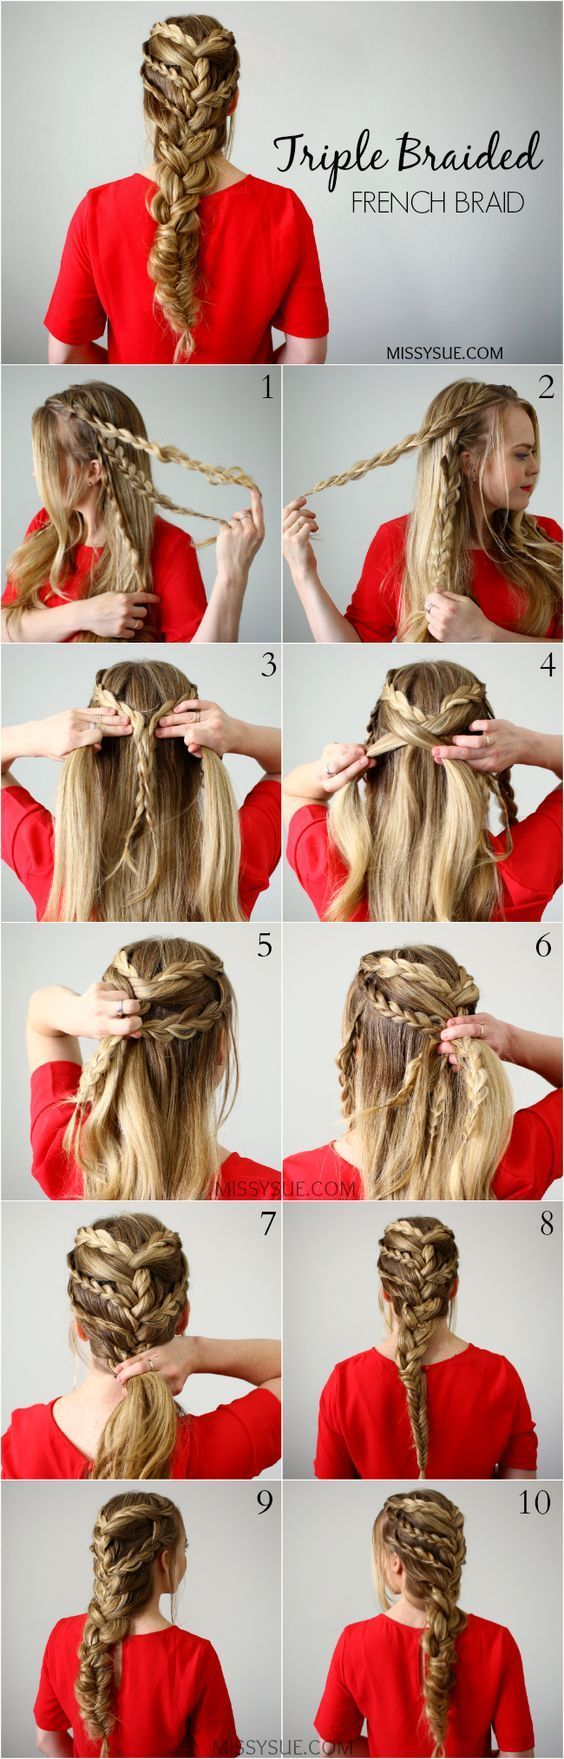 45 Step by Step Hair Tutorials For The Beauties In Town! - Page 4 of 6 - Trend To Wear